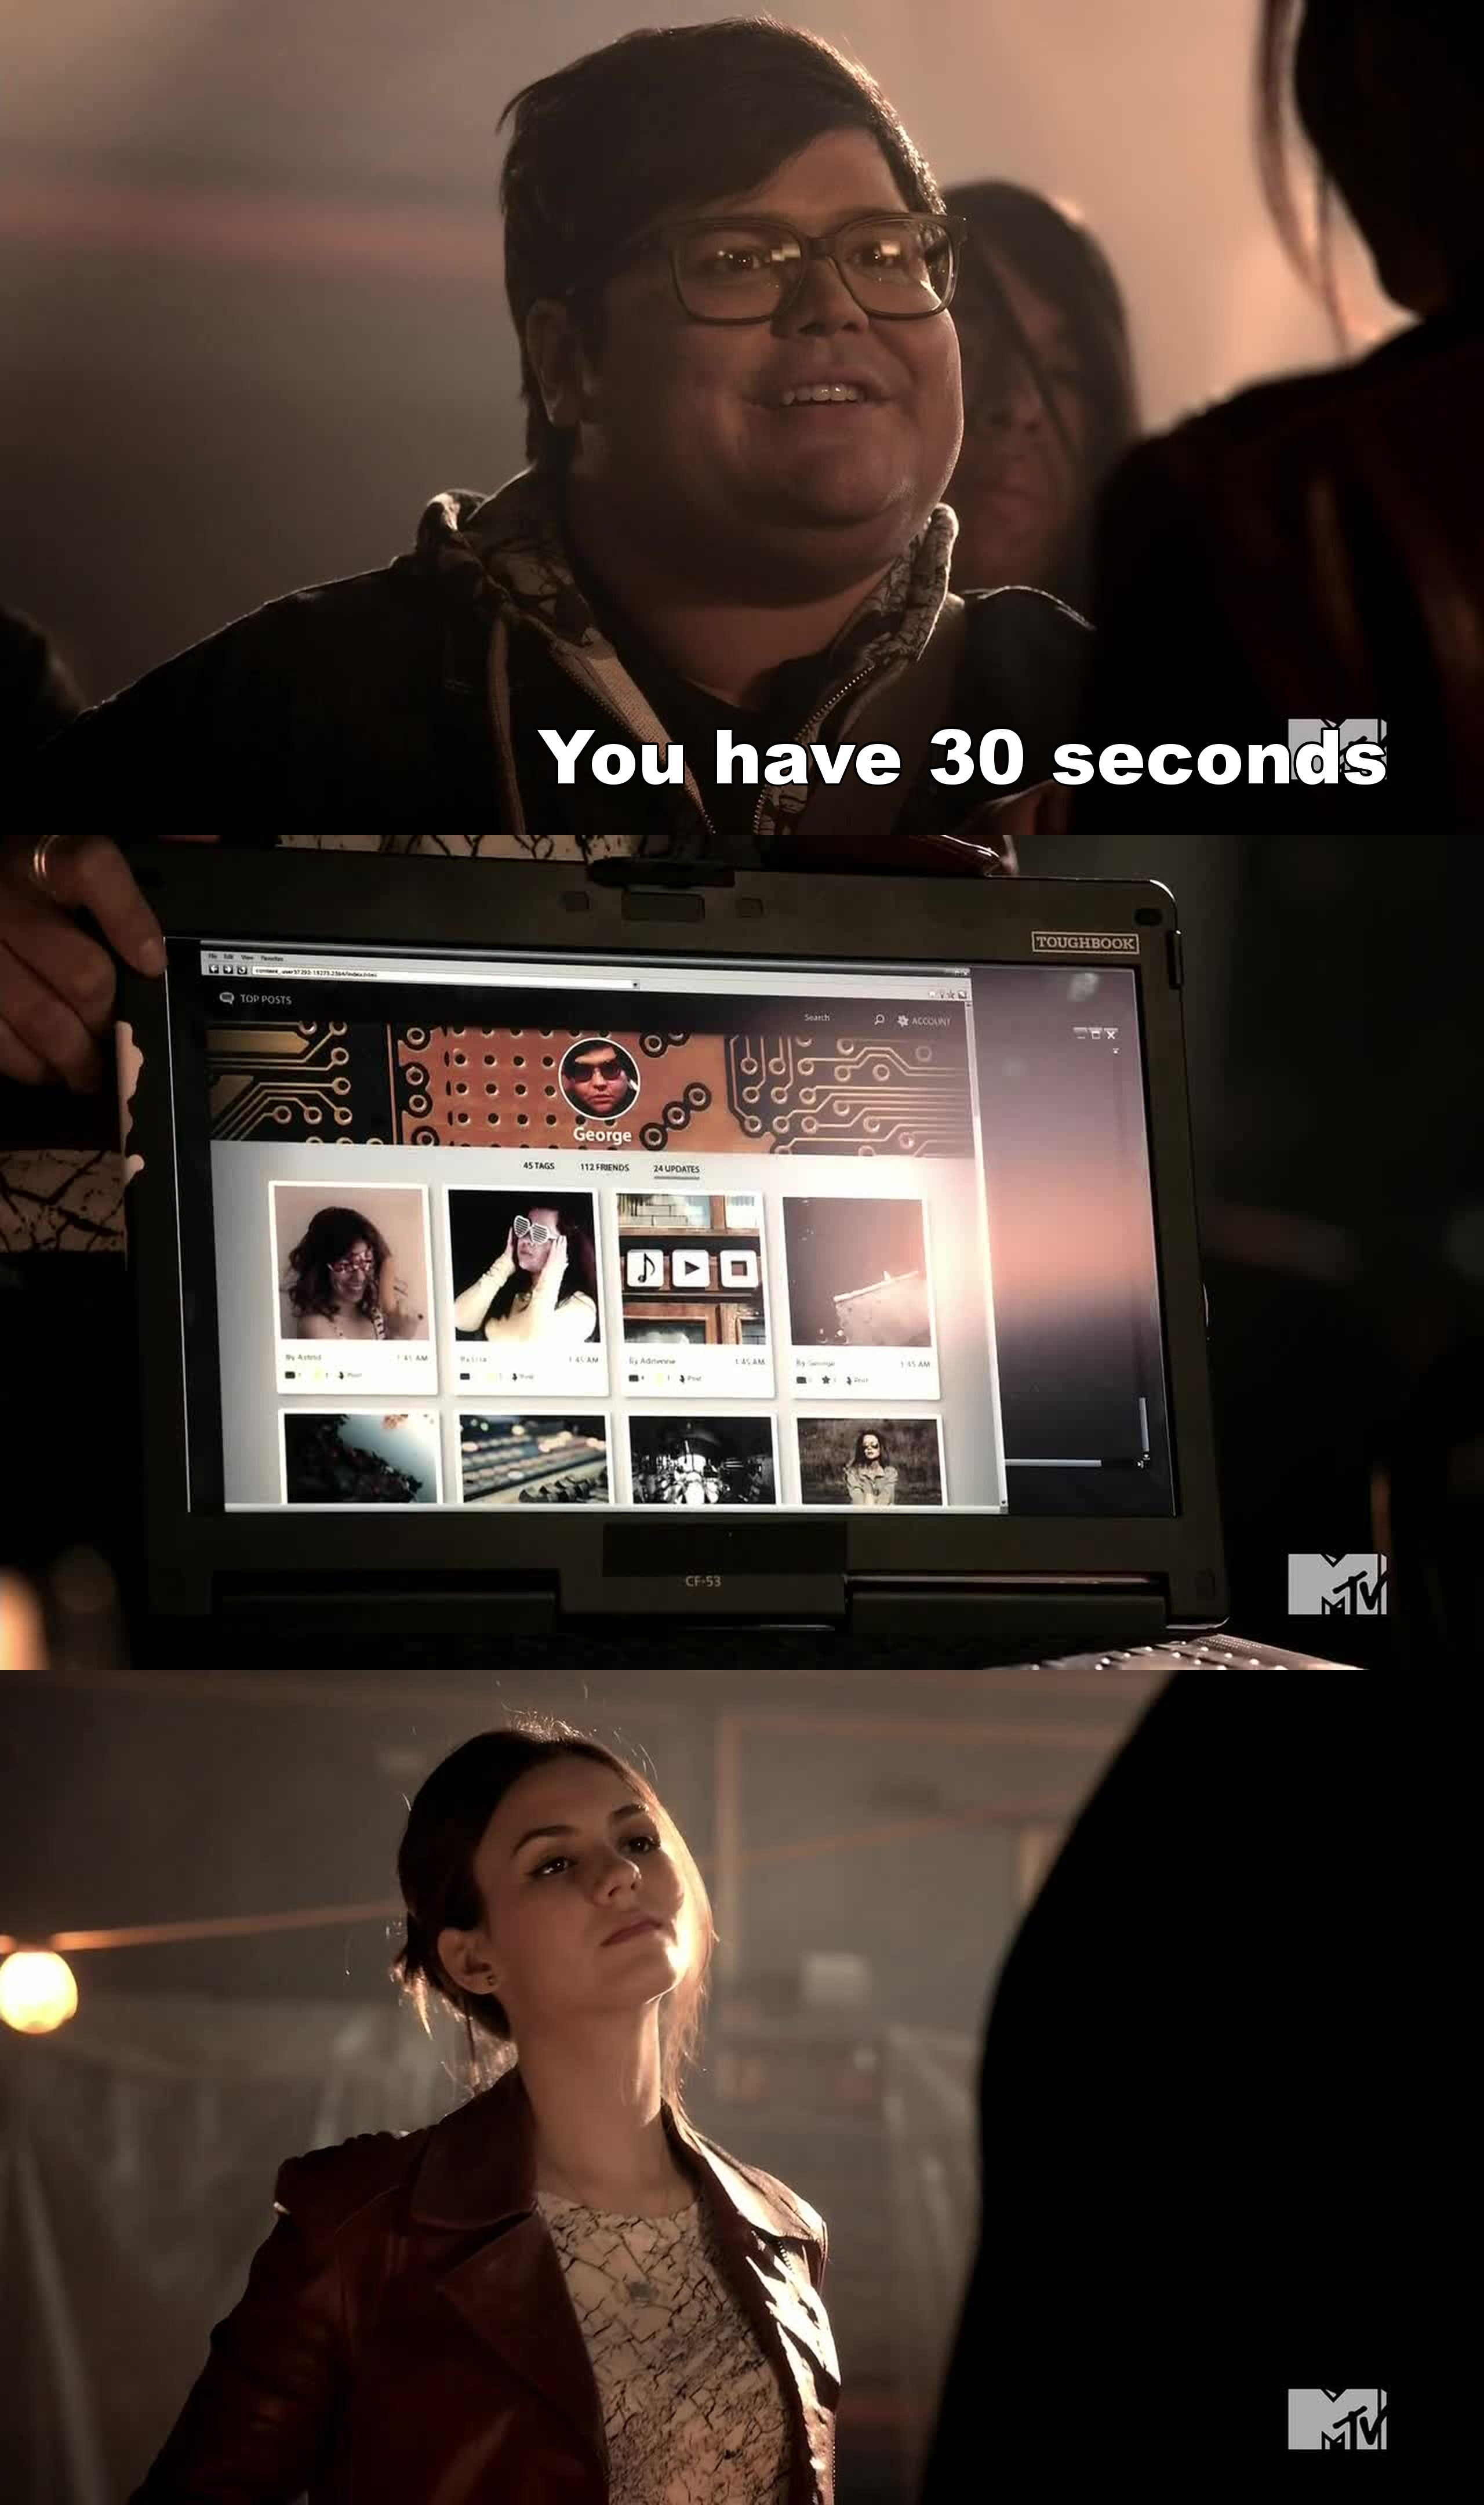 30 seconds is not enough for me to even turn on my laptop! Just saying :P